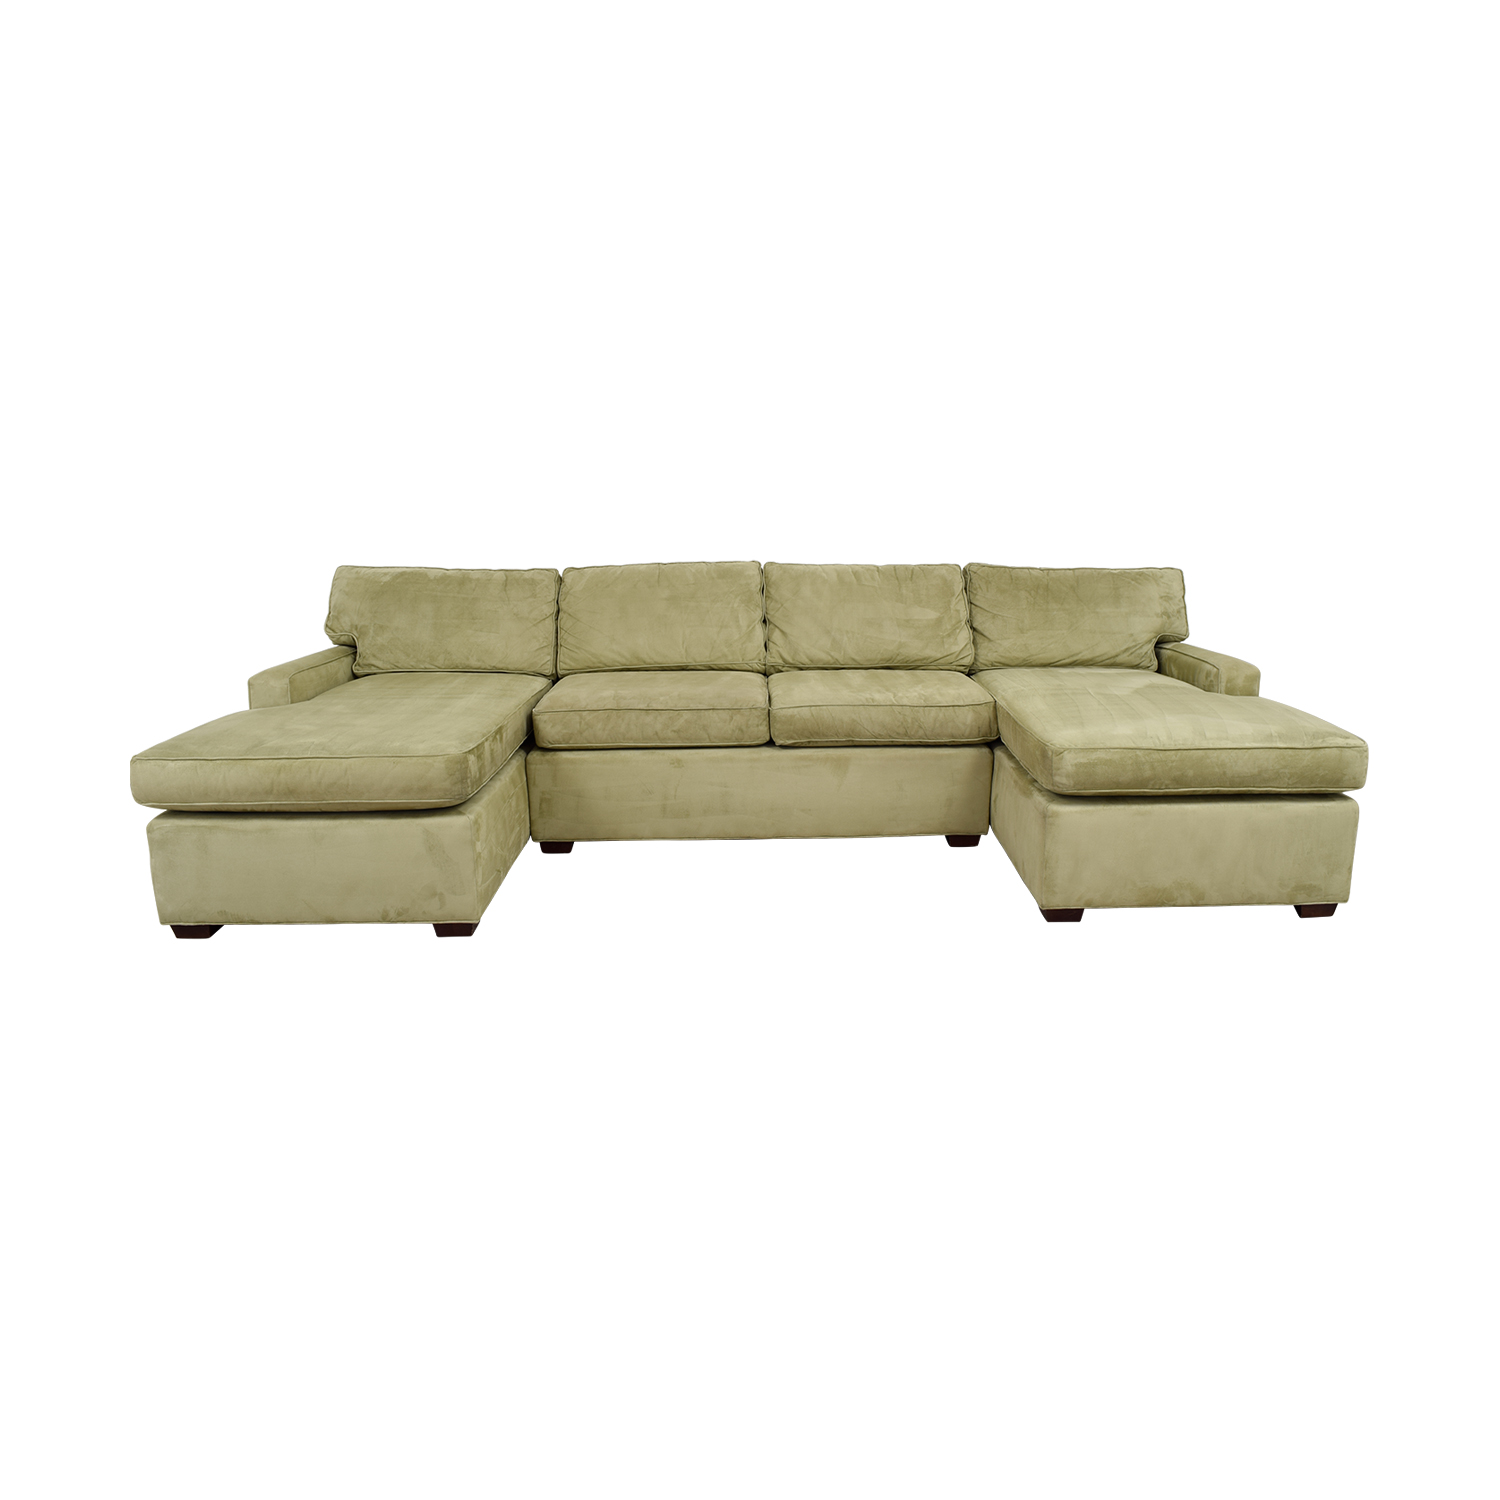 Sensational 86 Off Pottery Barn Pottery Barn Double Chaise Light Green Sectional Sofas Gmtry Best Dining Table And Chair Ideas Images Gmtryco